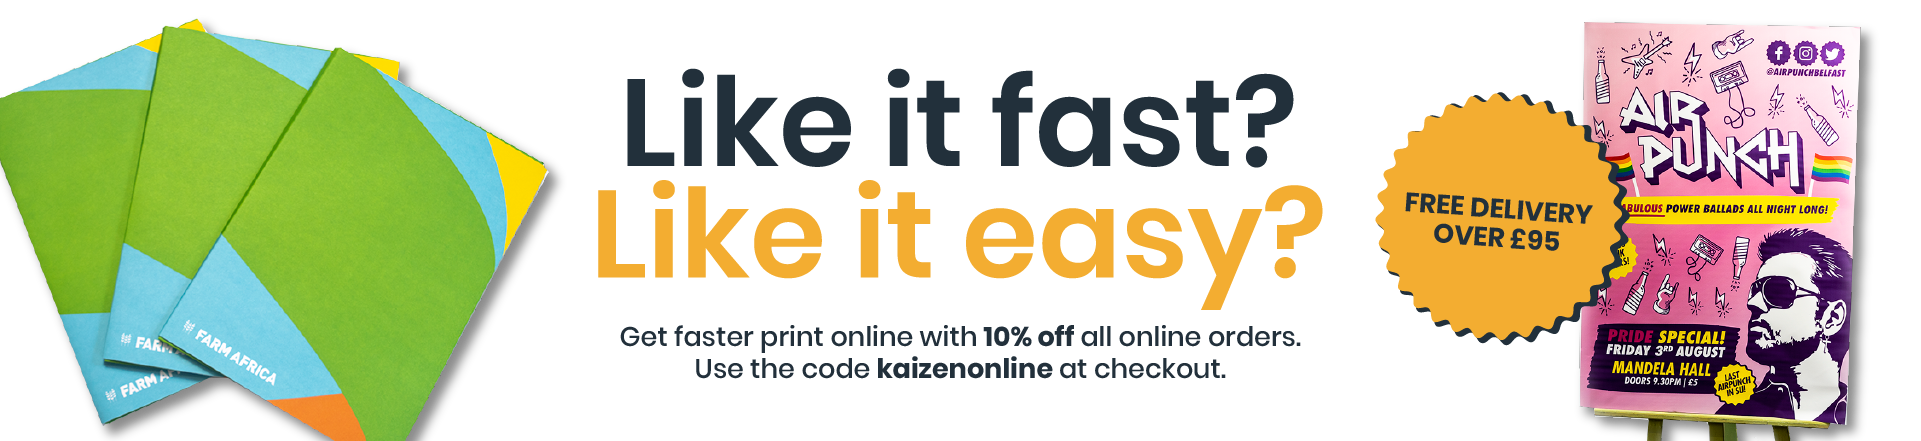 Kaizen Print Belfast - A Leading Digital Printing Company